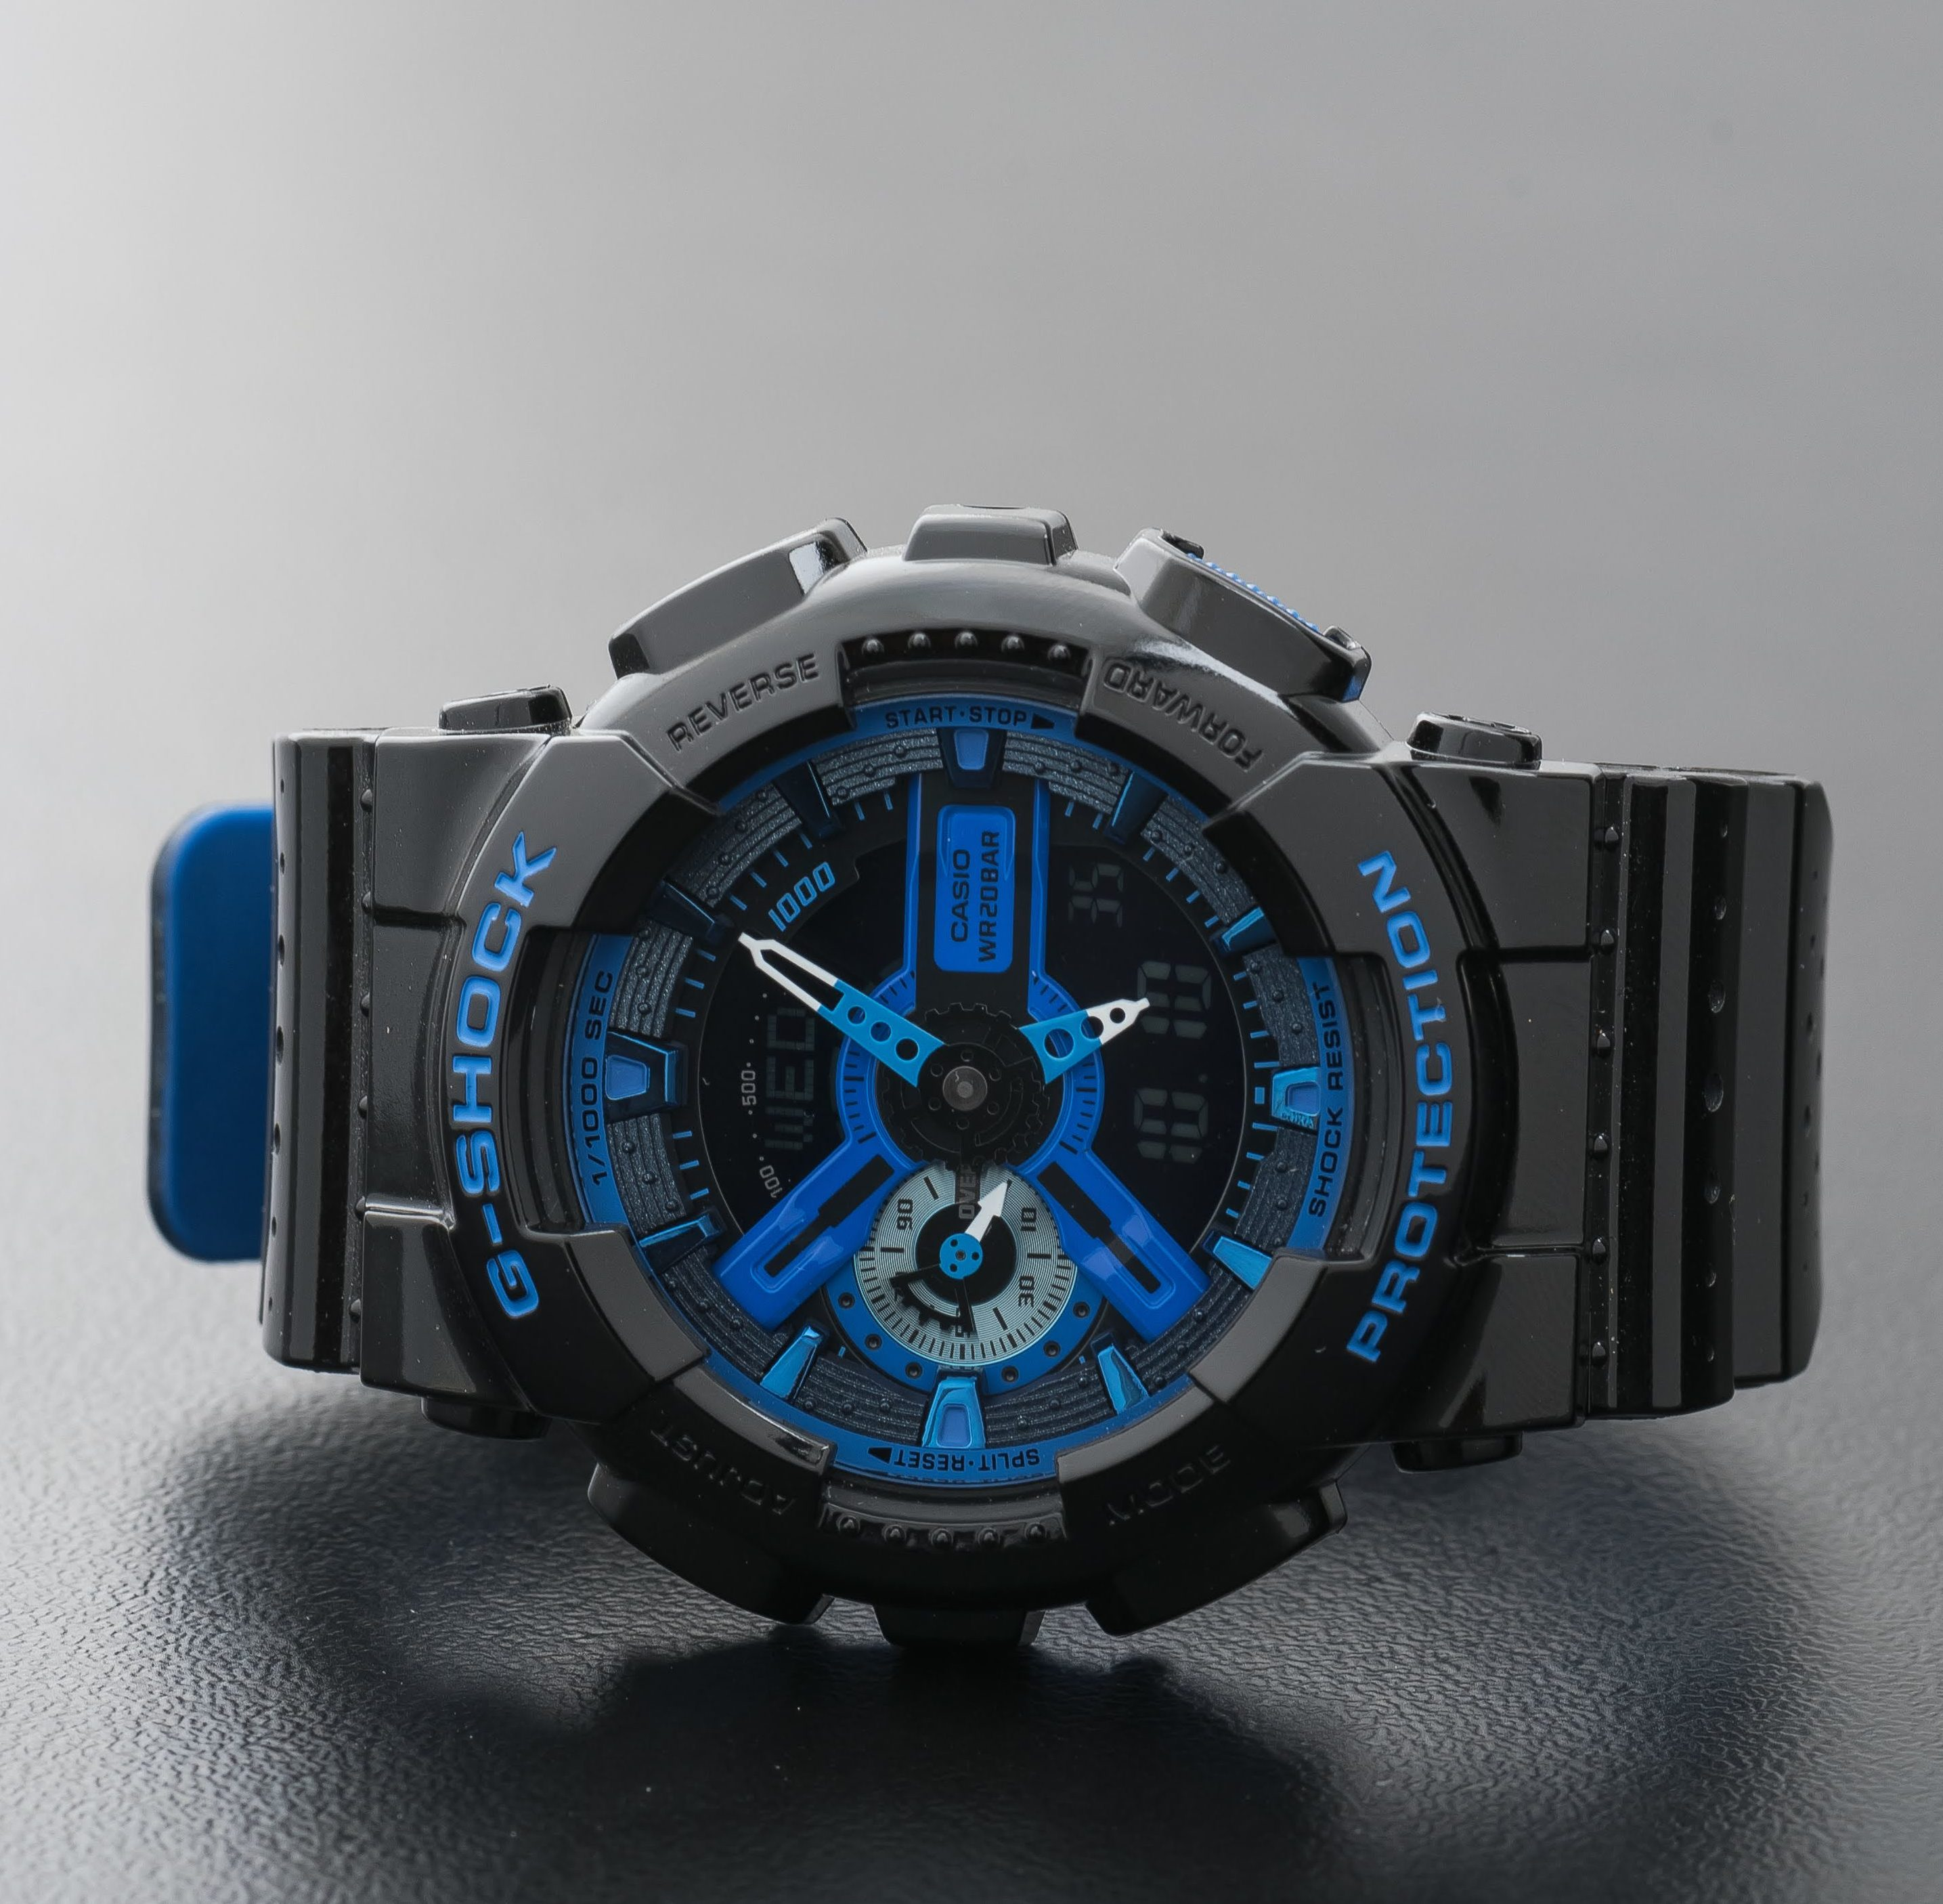 Casio G-Shock Men's Black Blue World Time Alarm Watch GA-110LP-1AER